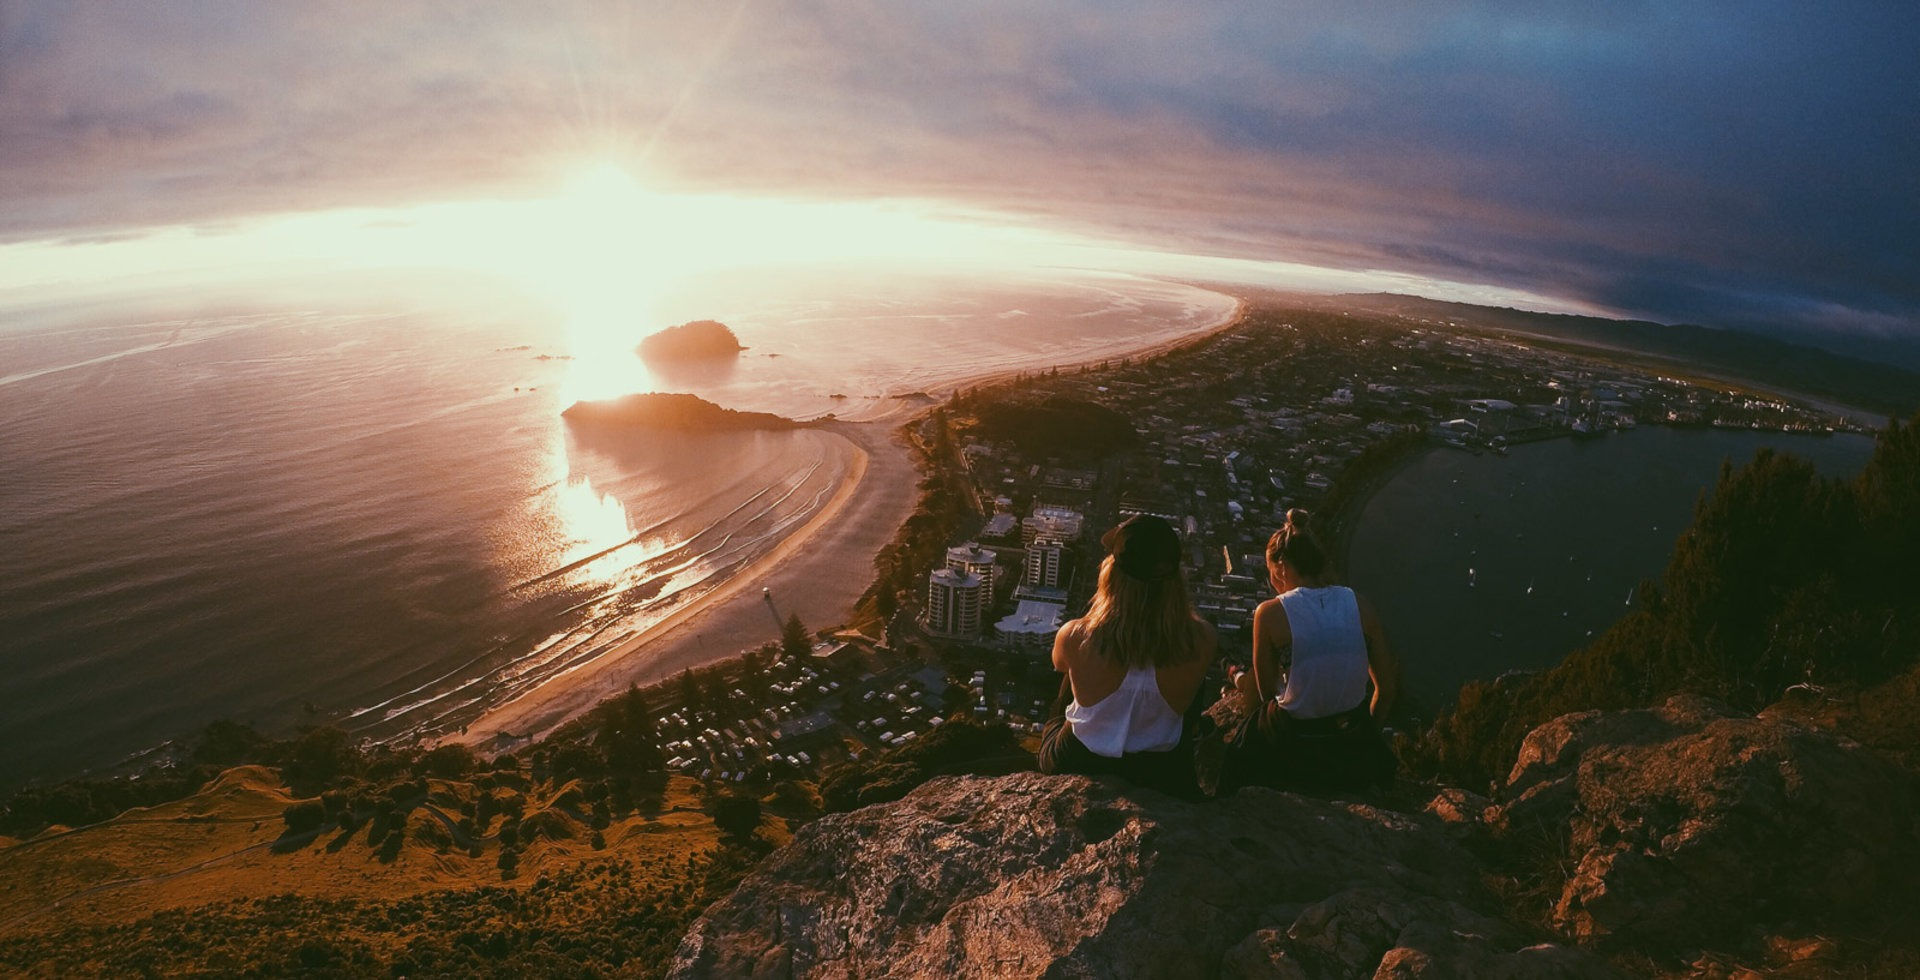 Hard to beat an early morning sunrise from the top of Mount Maunganui.